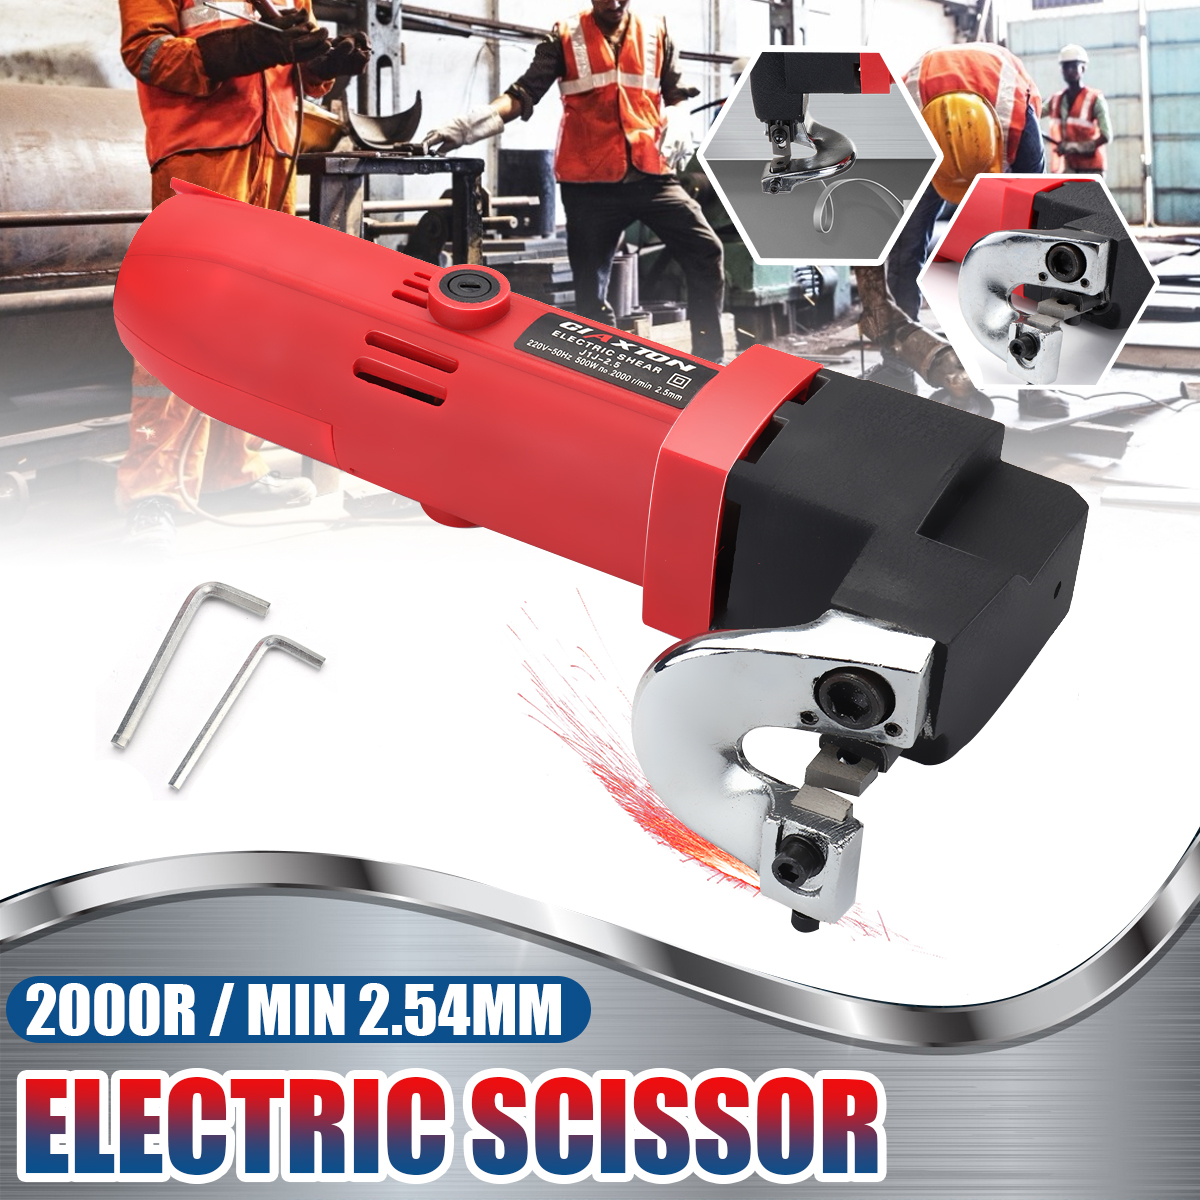 500W 220V 2000r/min EU Plug Professional Electric Sheet Metal Shear Snip Scissor Cutter Power Tool Aluminum Alloy 290x77x145mm